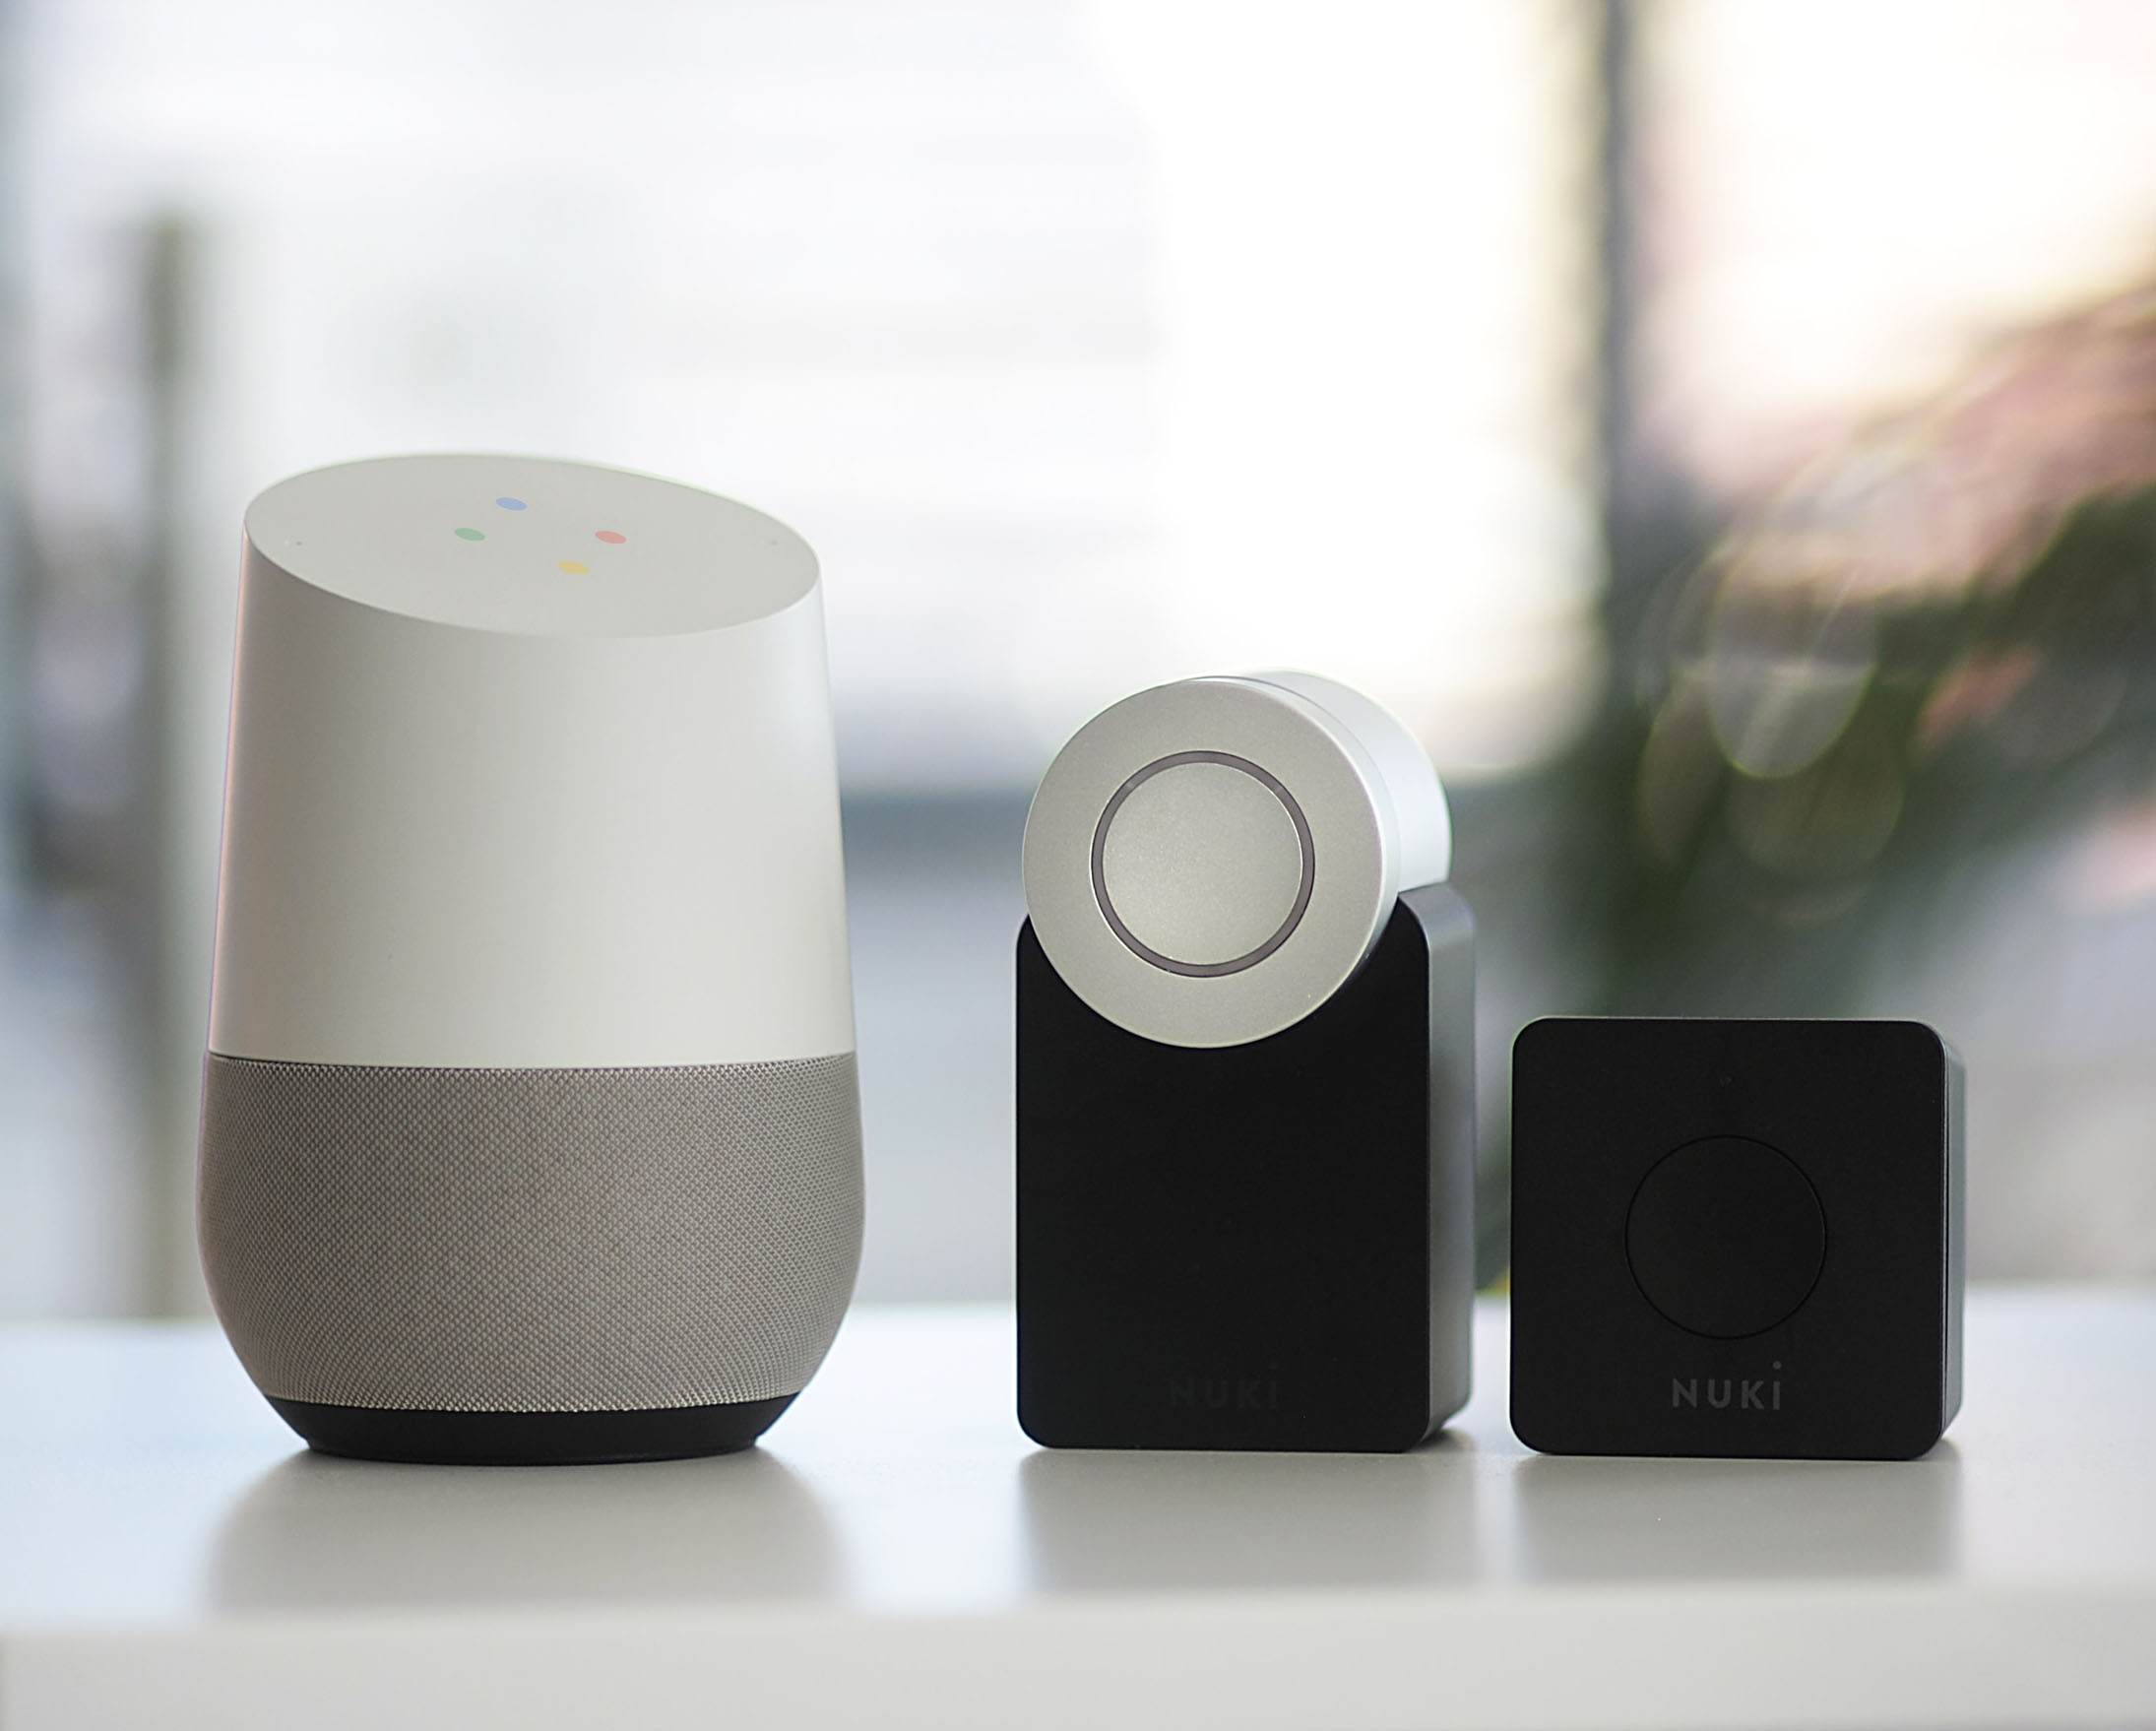 In-Room control, voice assistant, smart key con Manet